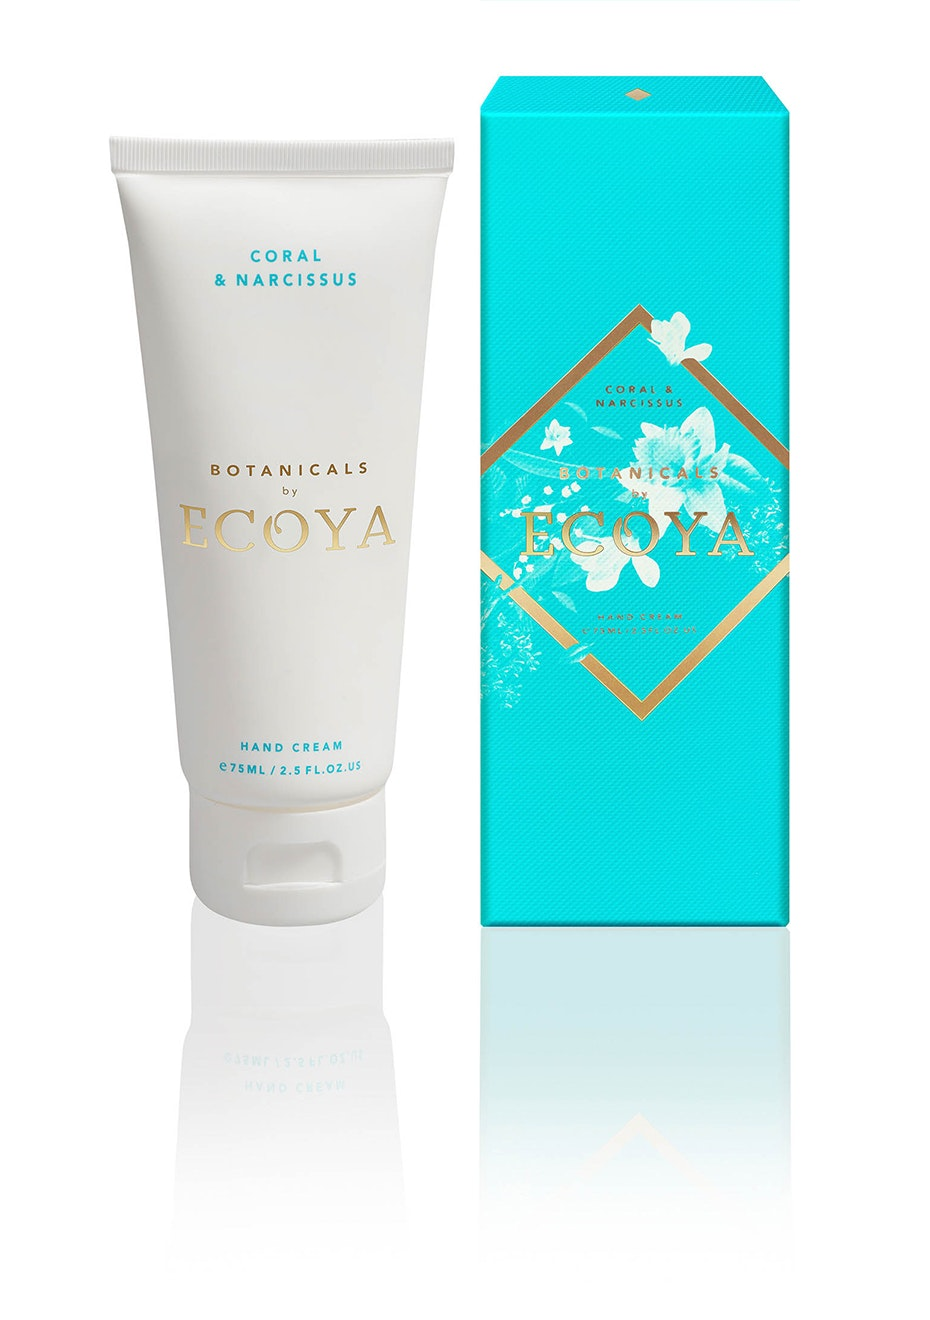 Ecoya - Hand Cream - Coral & Narcissus